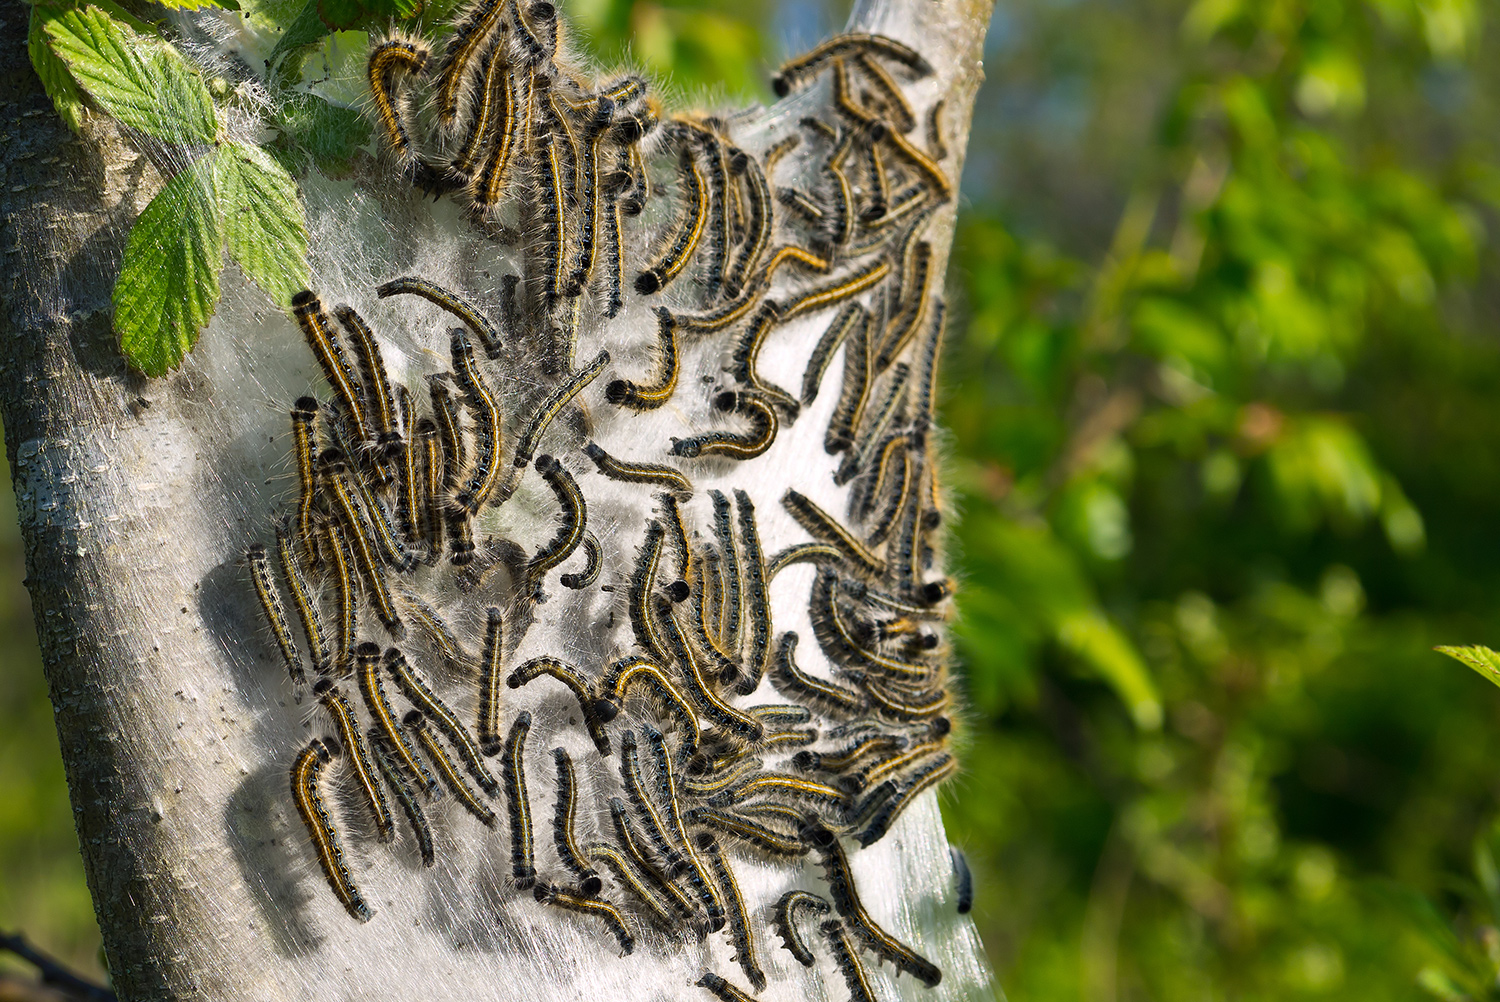 tent caterpillars on web